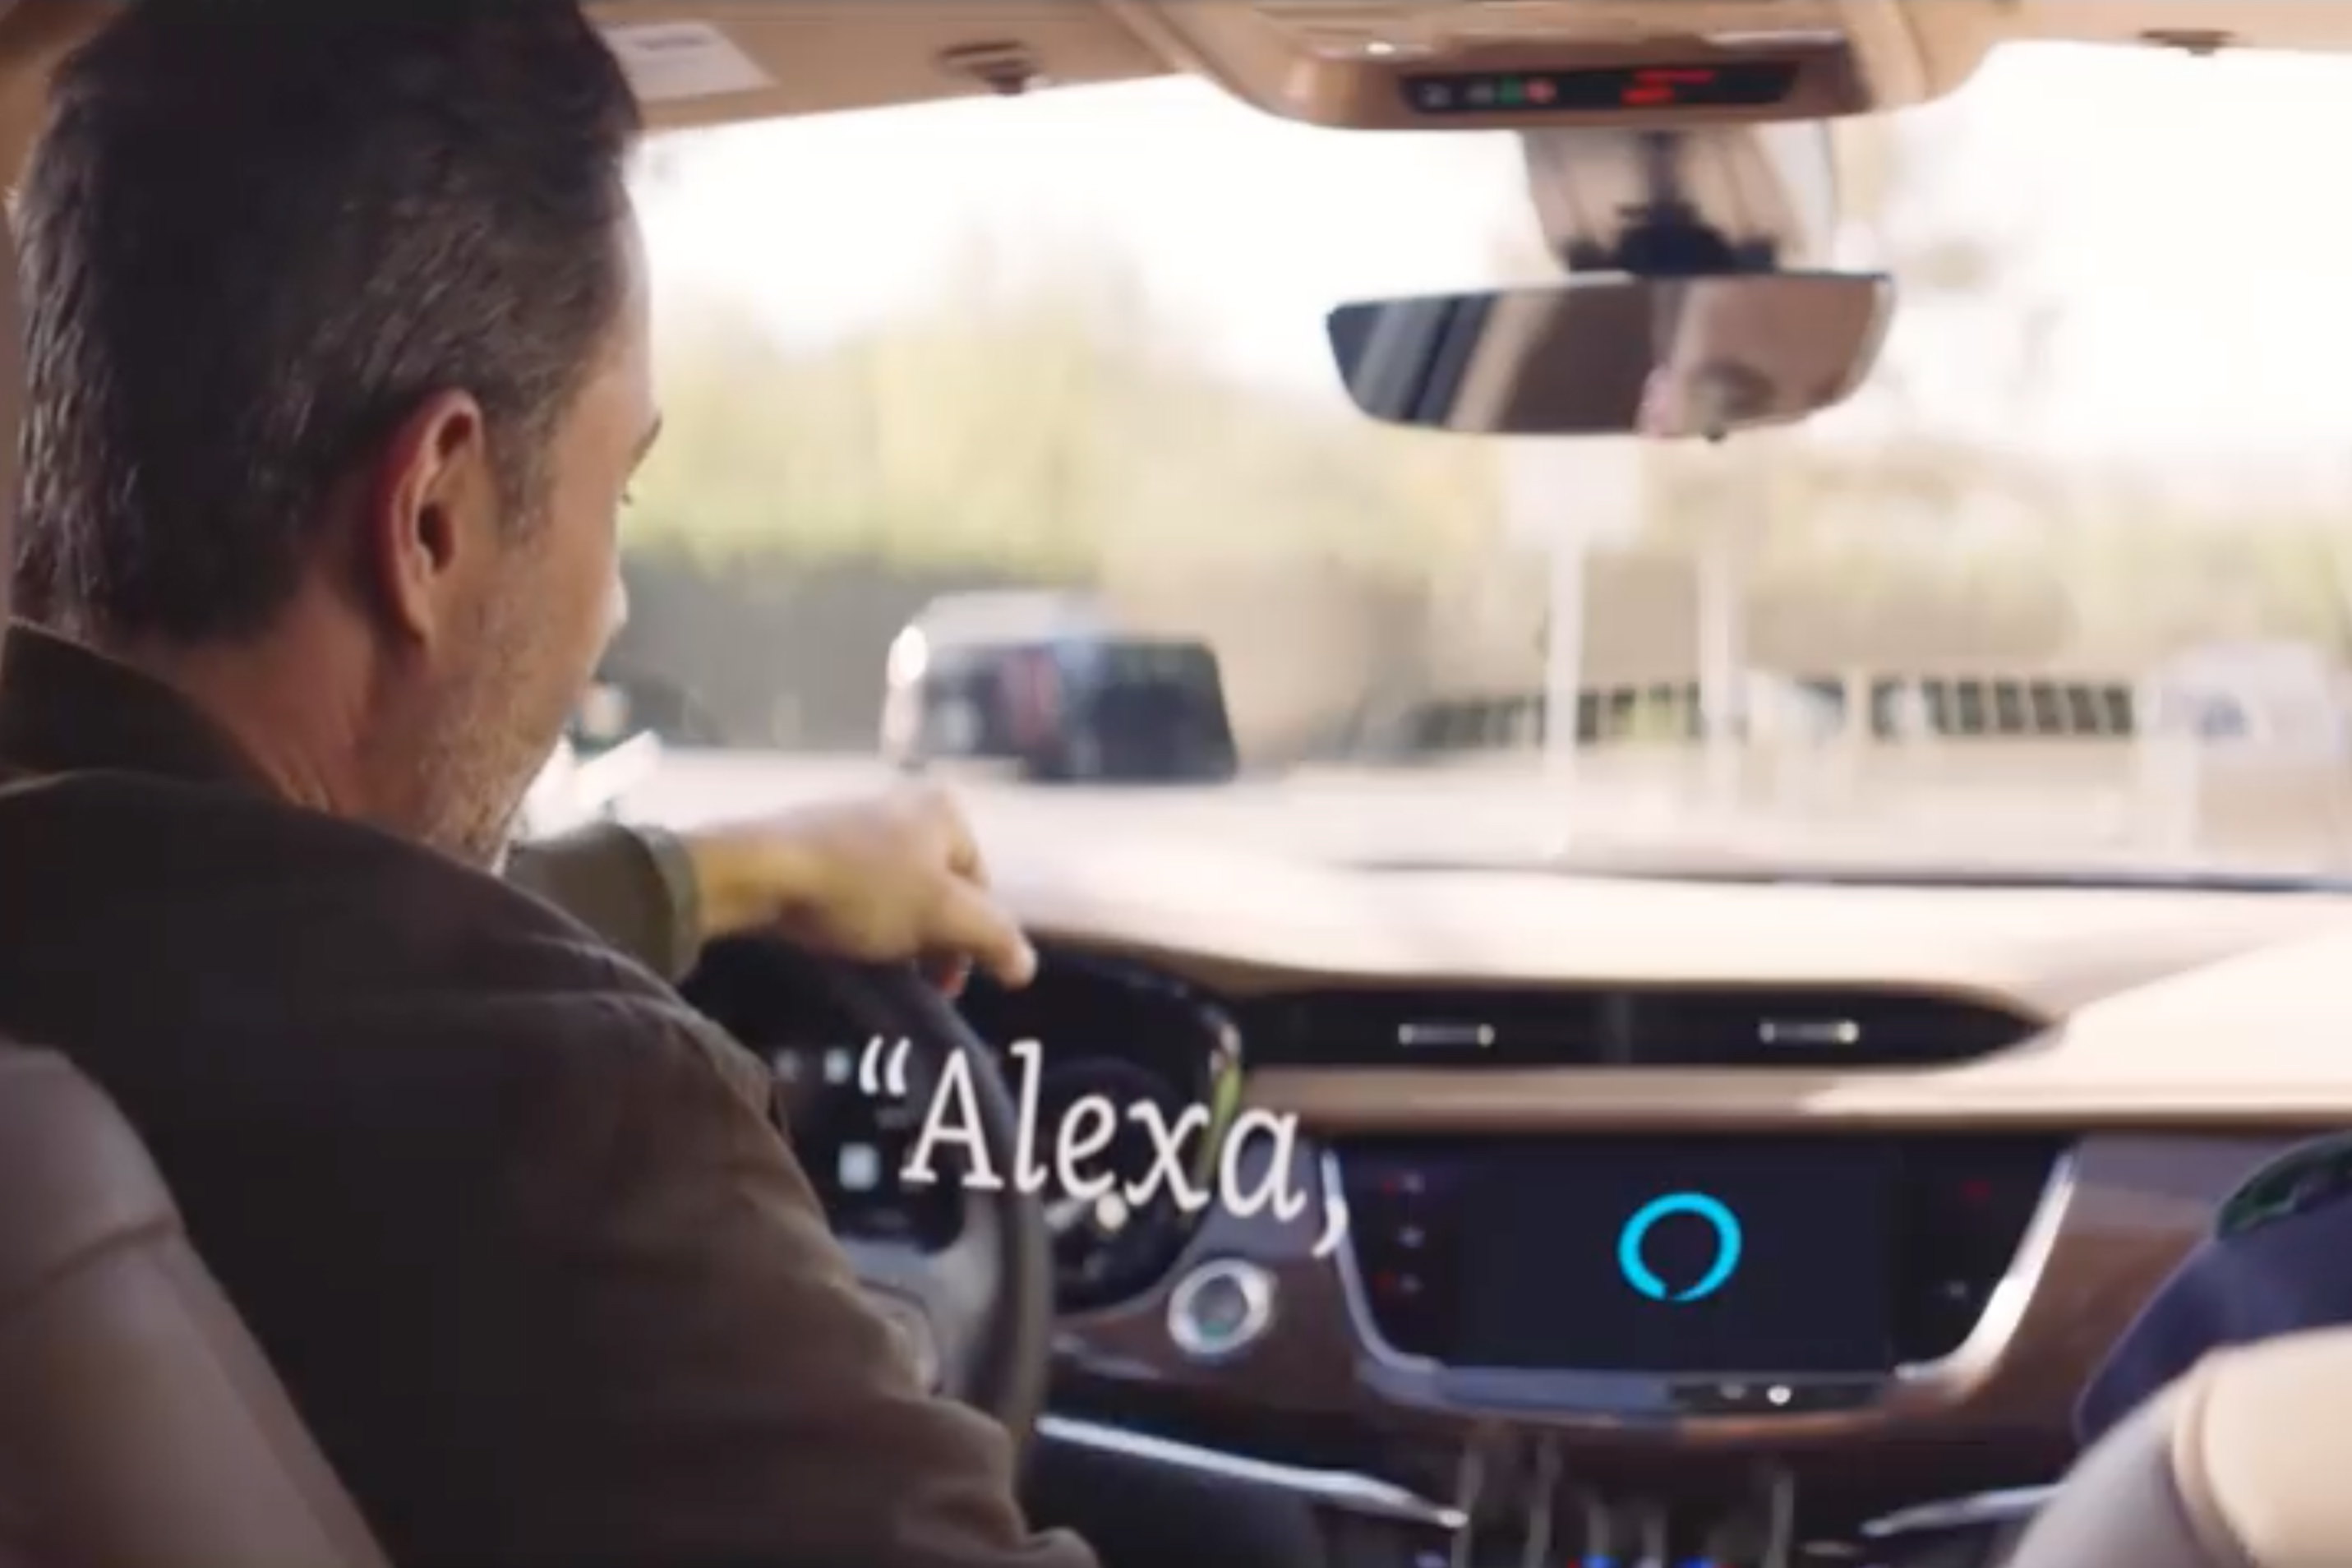 Amazon's automotive offerings expand through Alexa Auto at CES